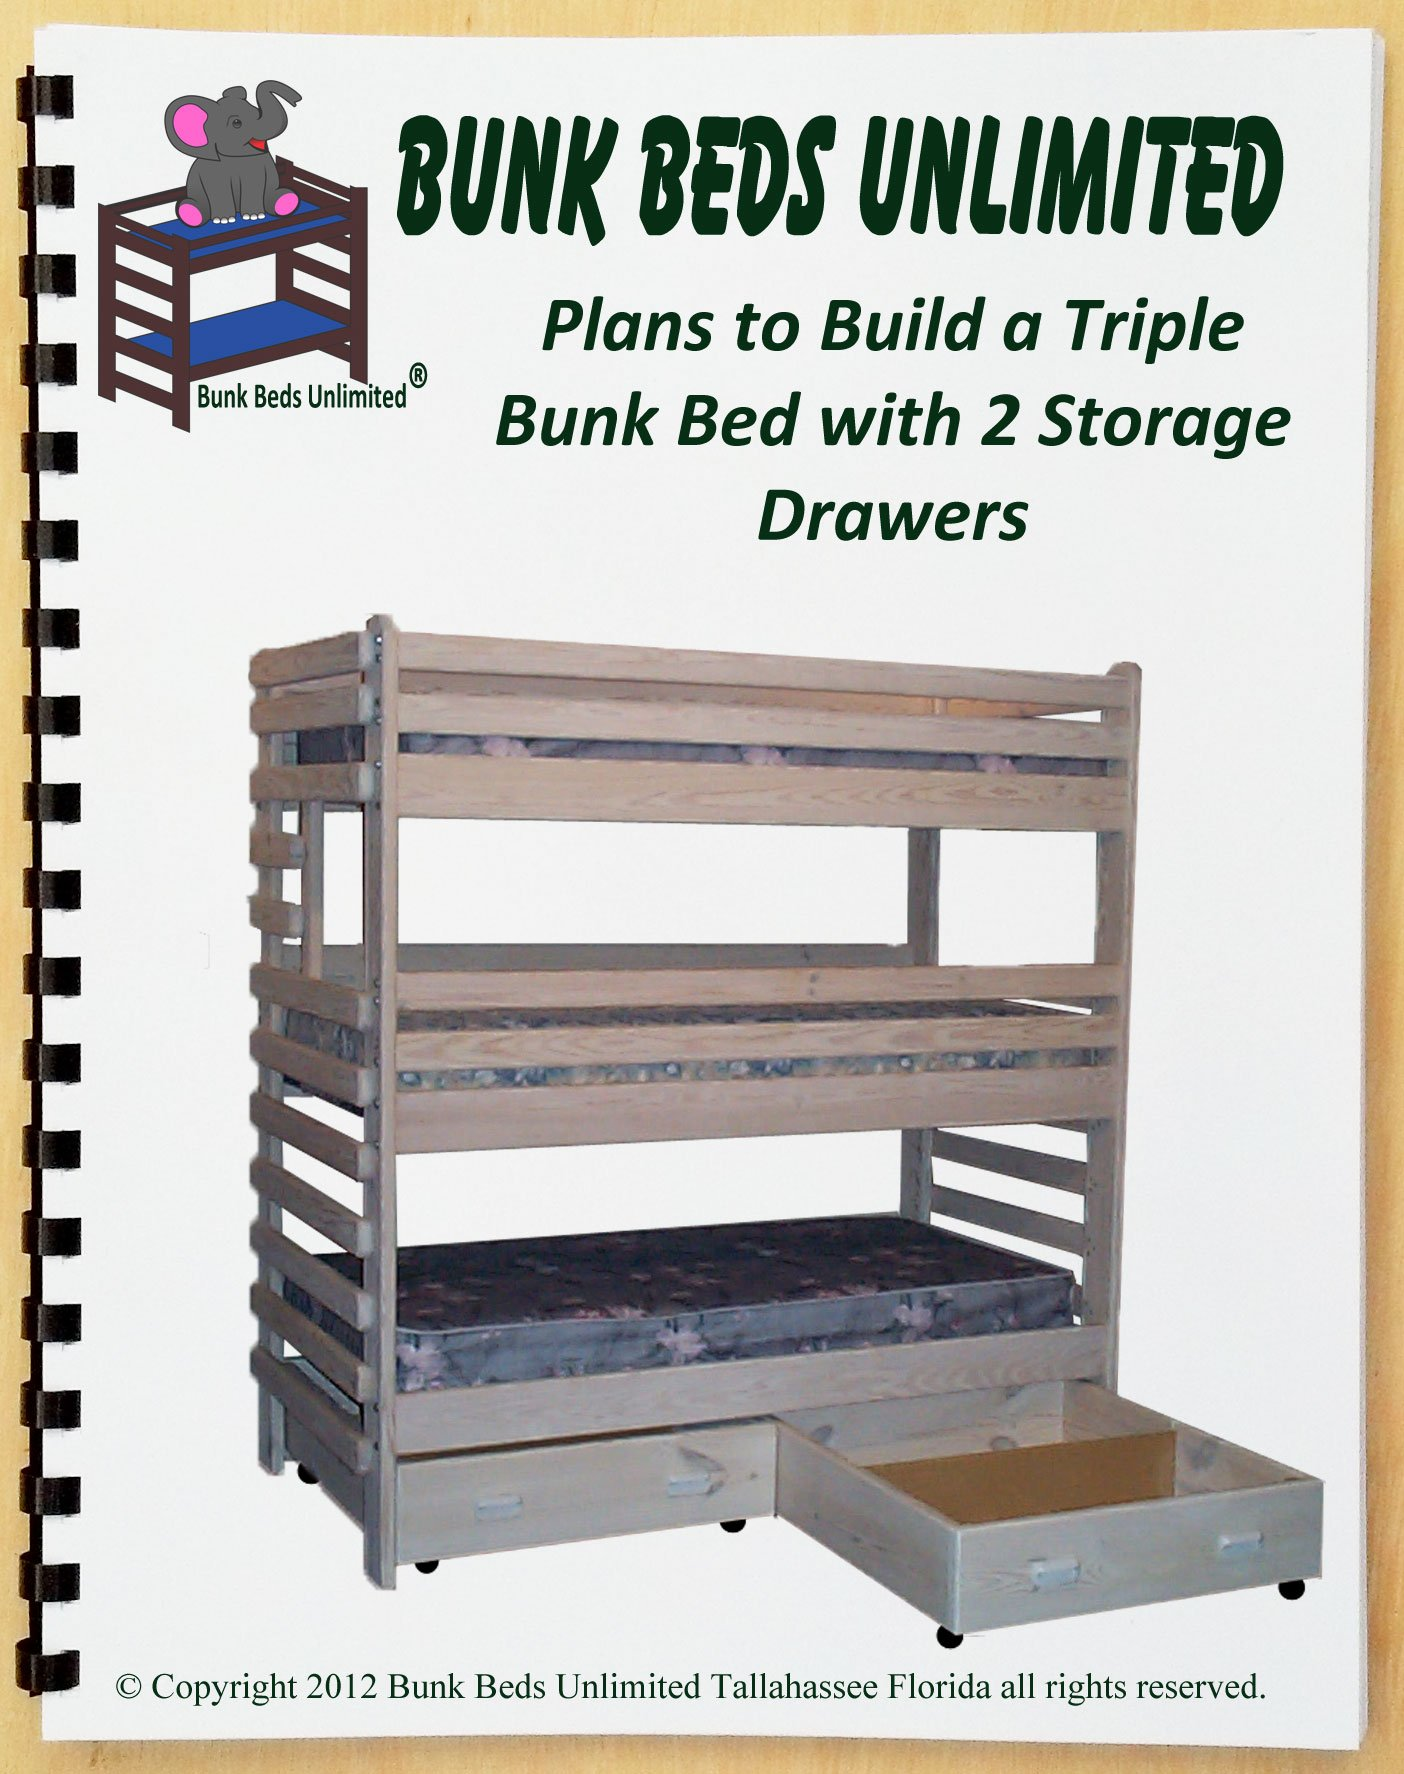 Triple Bunk DIY Woodworking Plan to Build Your Own Extra-Tall with Two Large Storage Drawers and Hardware Kit for Bunk and Two Drawers that Sleeps Three (Wood NOT Included)